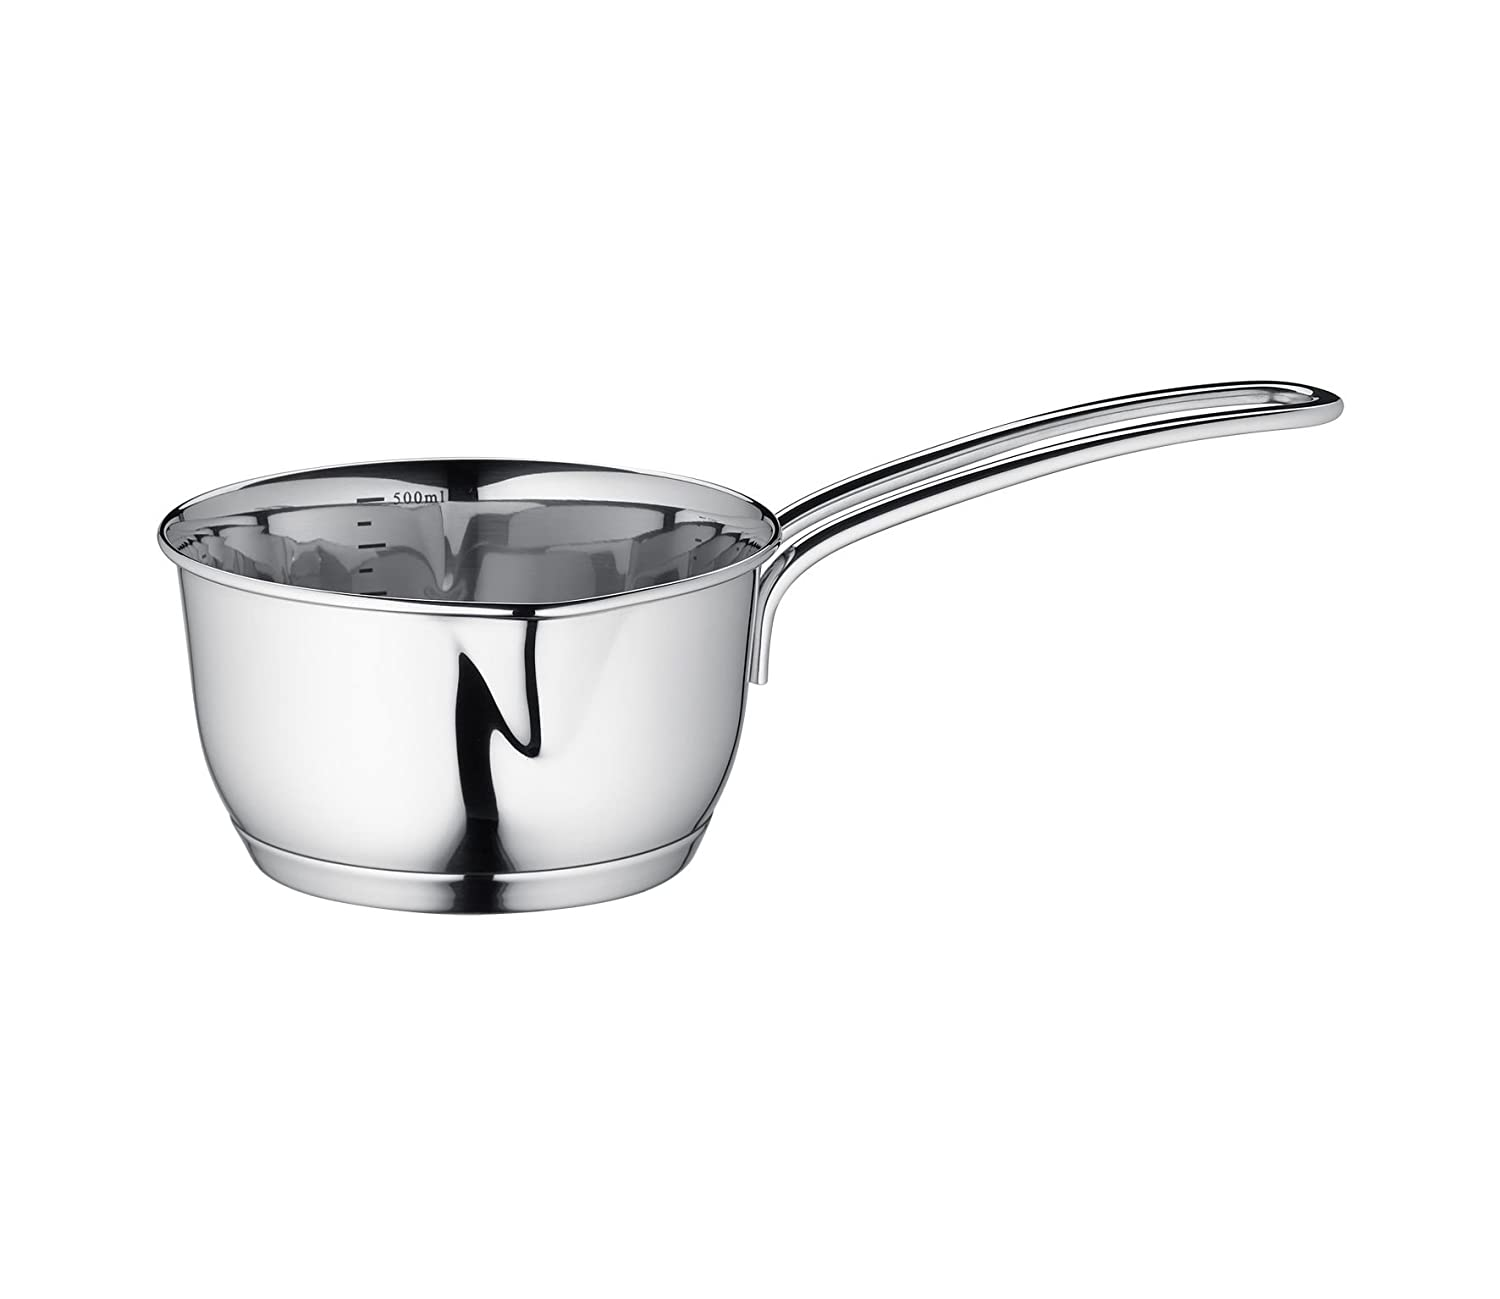 Kuchenprofi 2370002812 Stainless Steel Saucepan with Clad Bottom, 16-Ounce